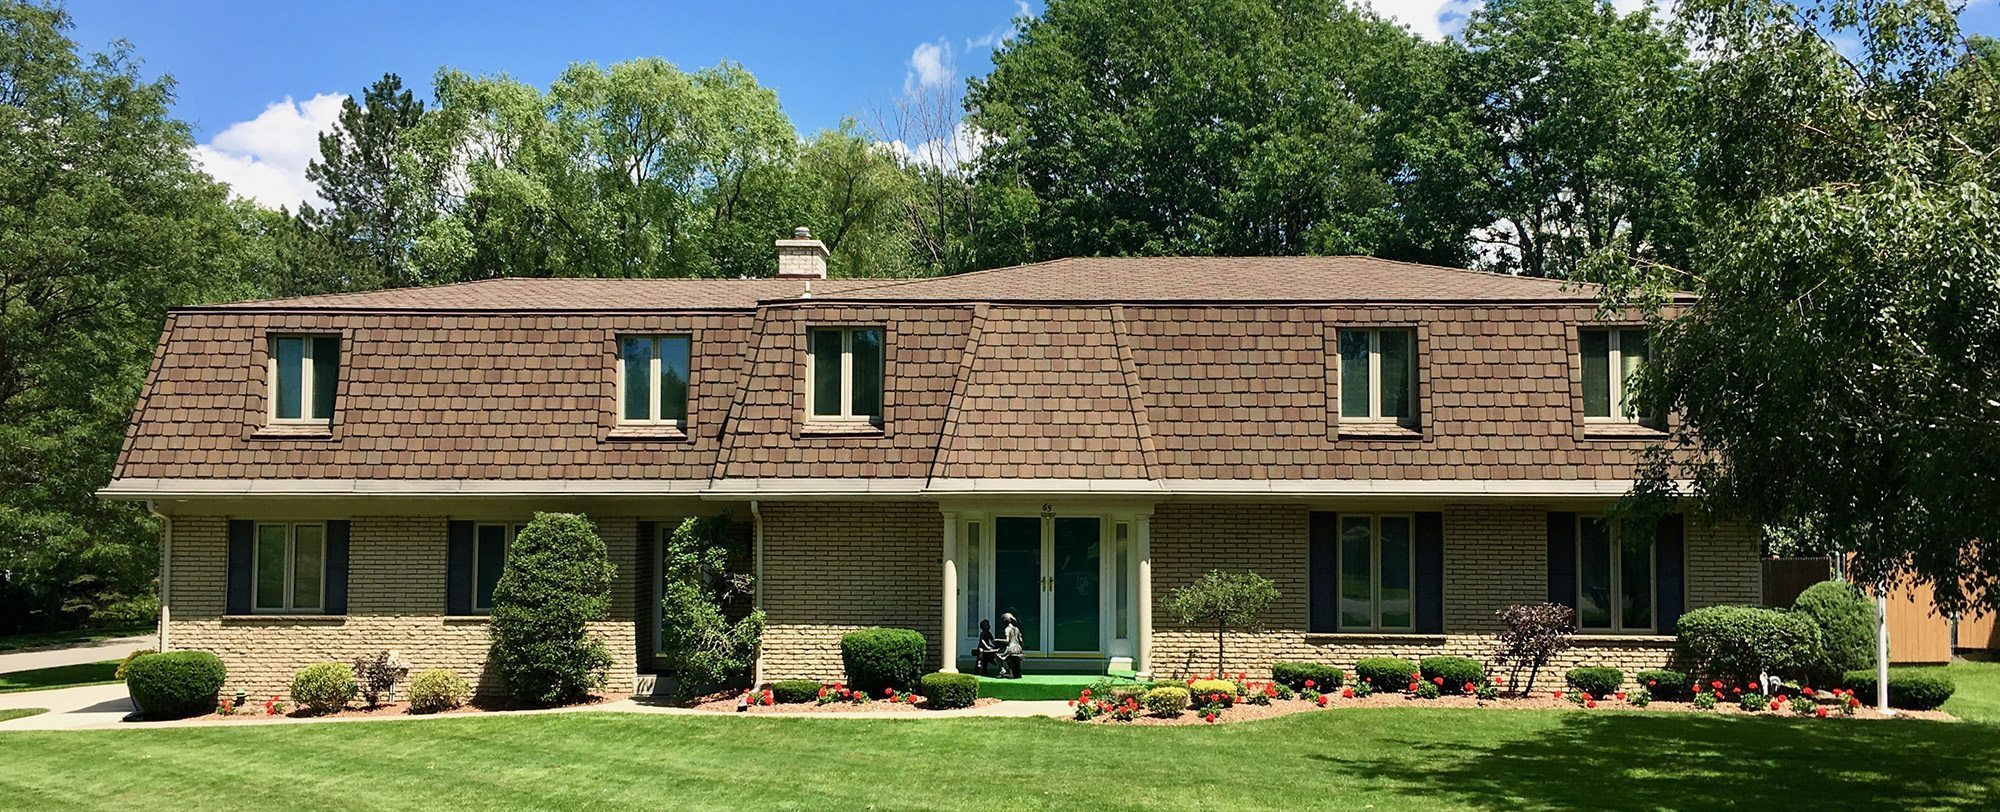 65 Green Lake Drive, Orchard Park, NY 14127